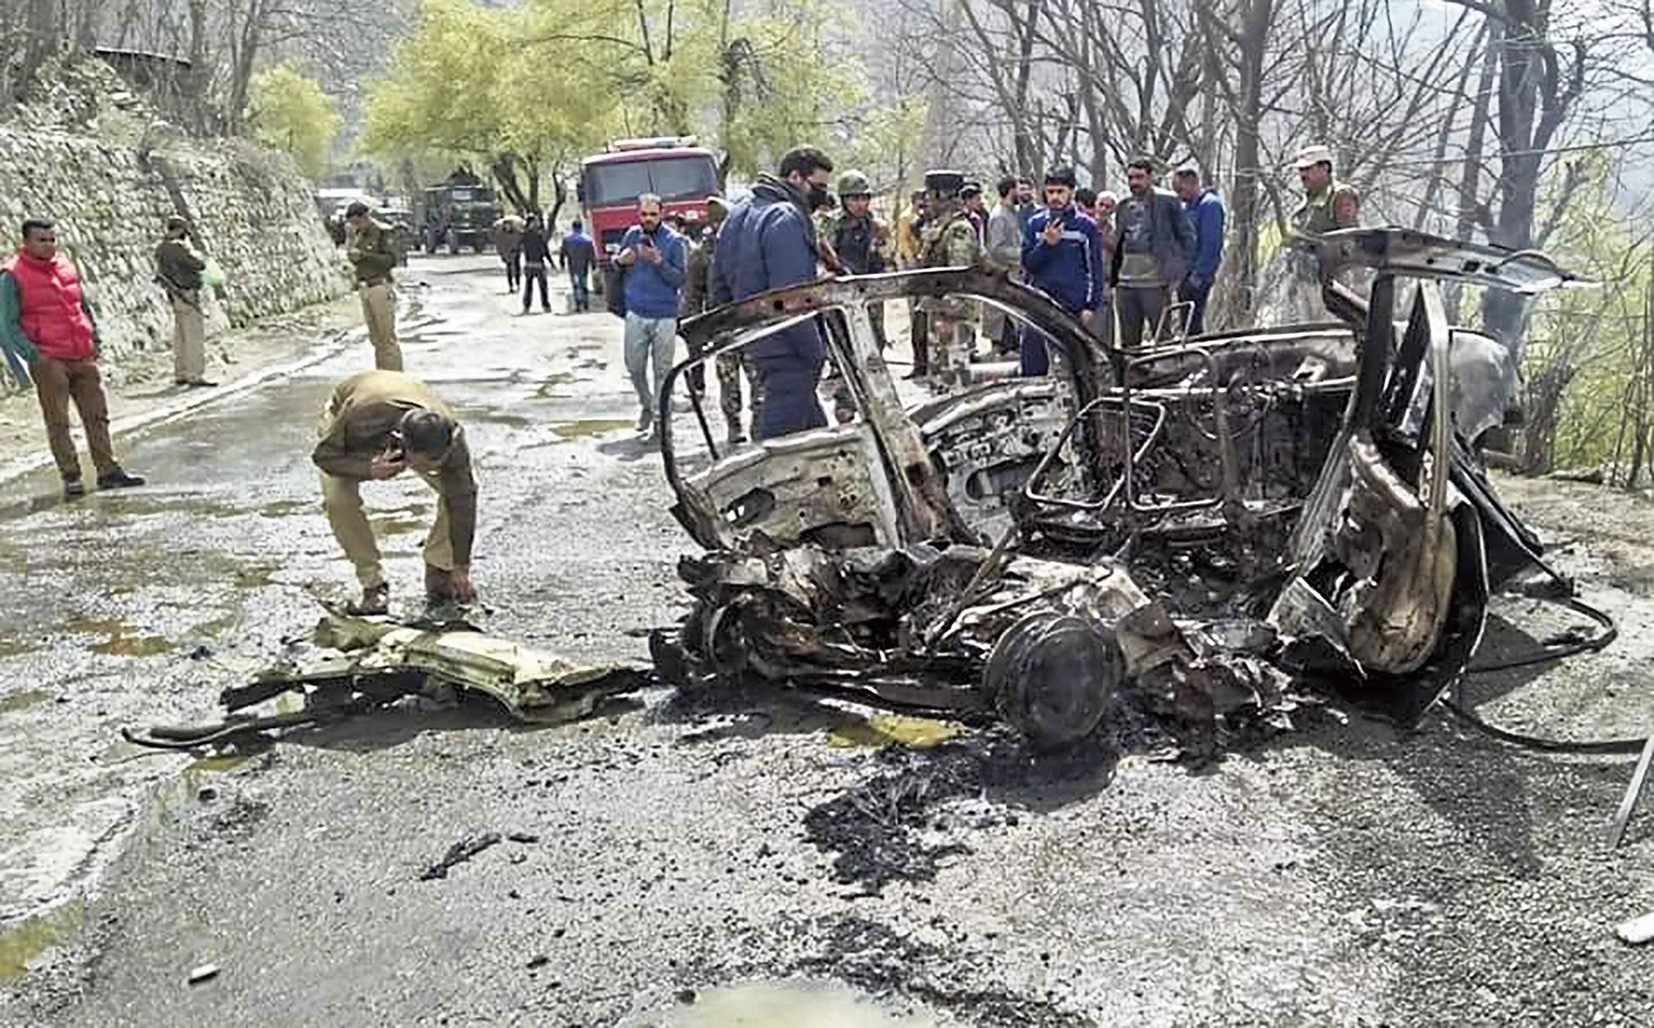 Officers inspect the mangled remains of the car that exploded on the Jammu-Srinagar highway.